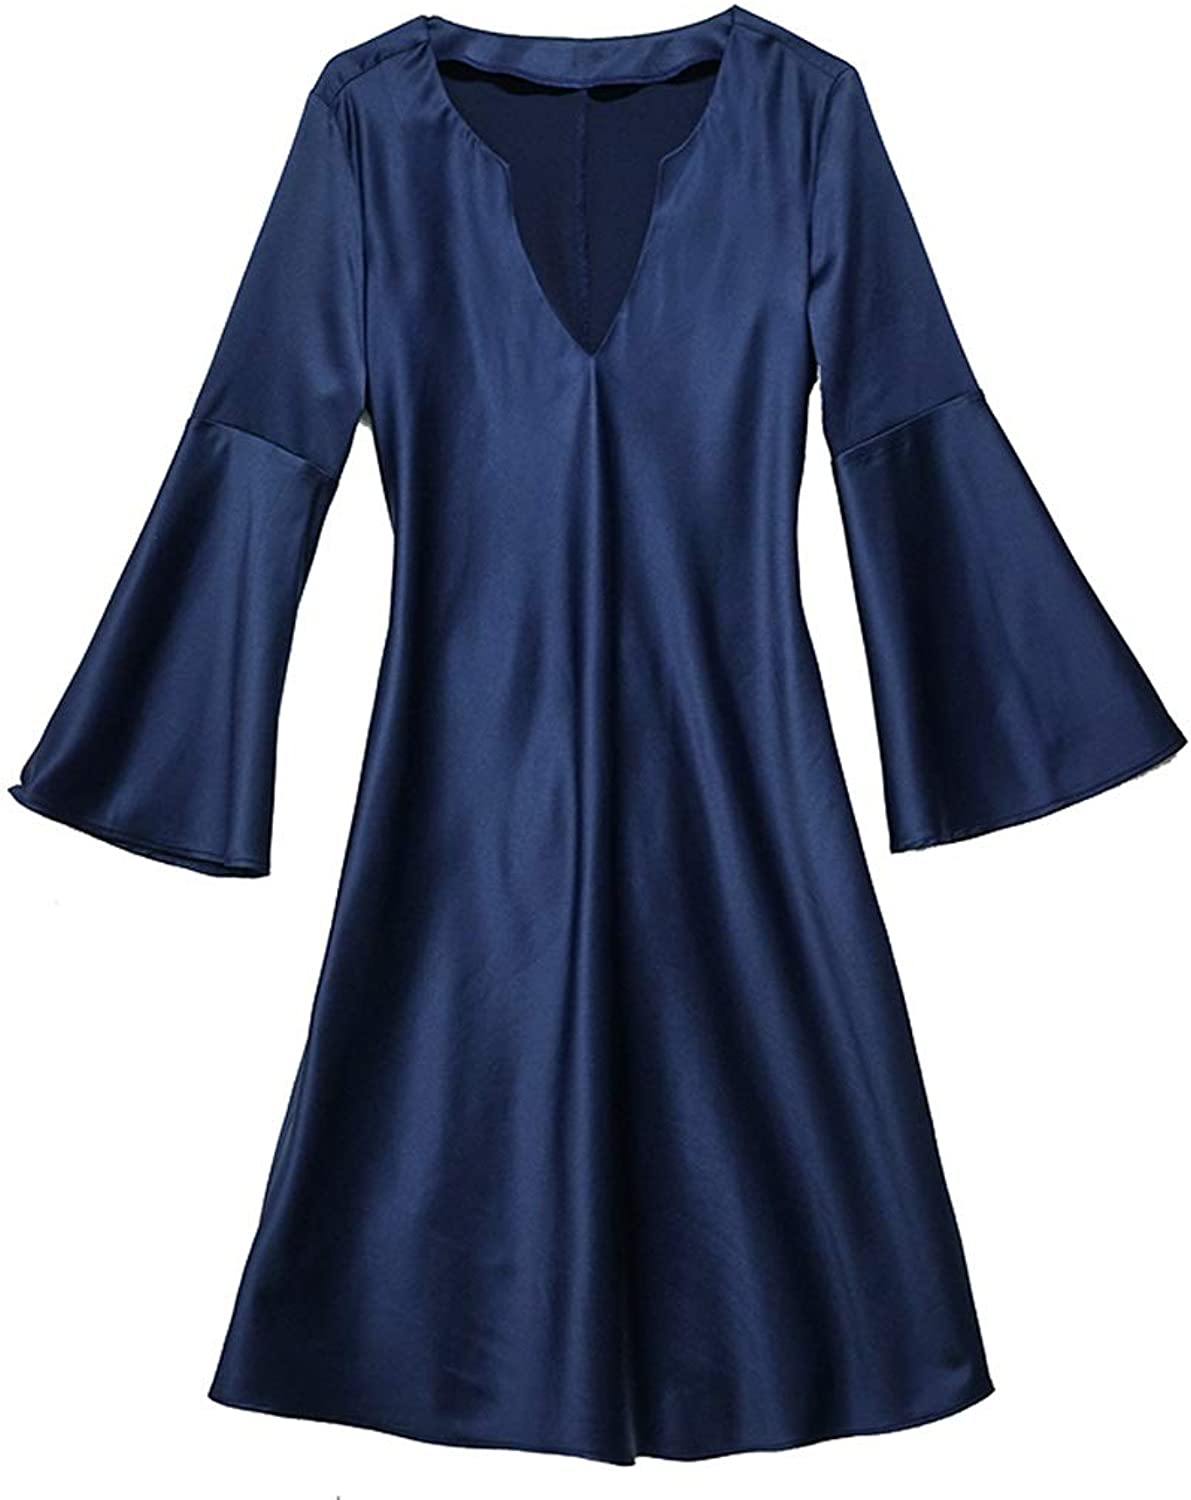 Home Service Female Spring and Summer Sexy Silk Nightdress LongSleeved Pajamas (color   Navy, Size   L)